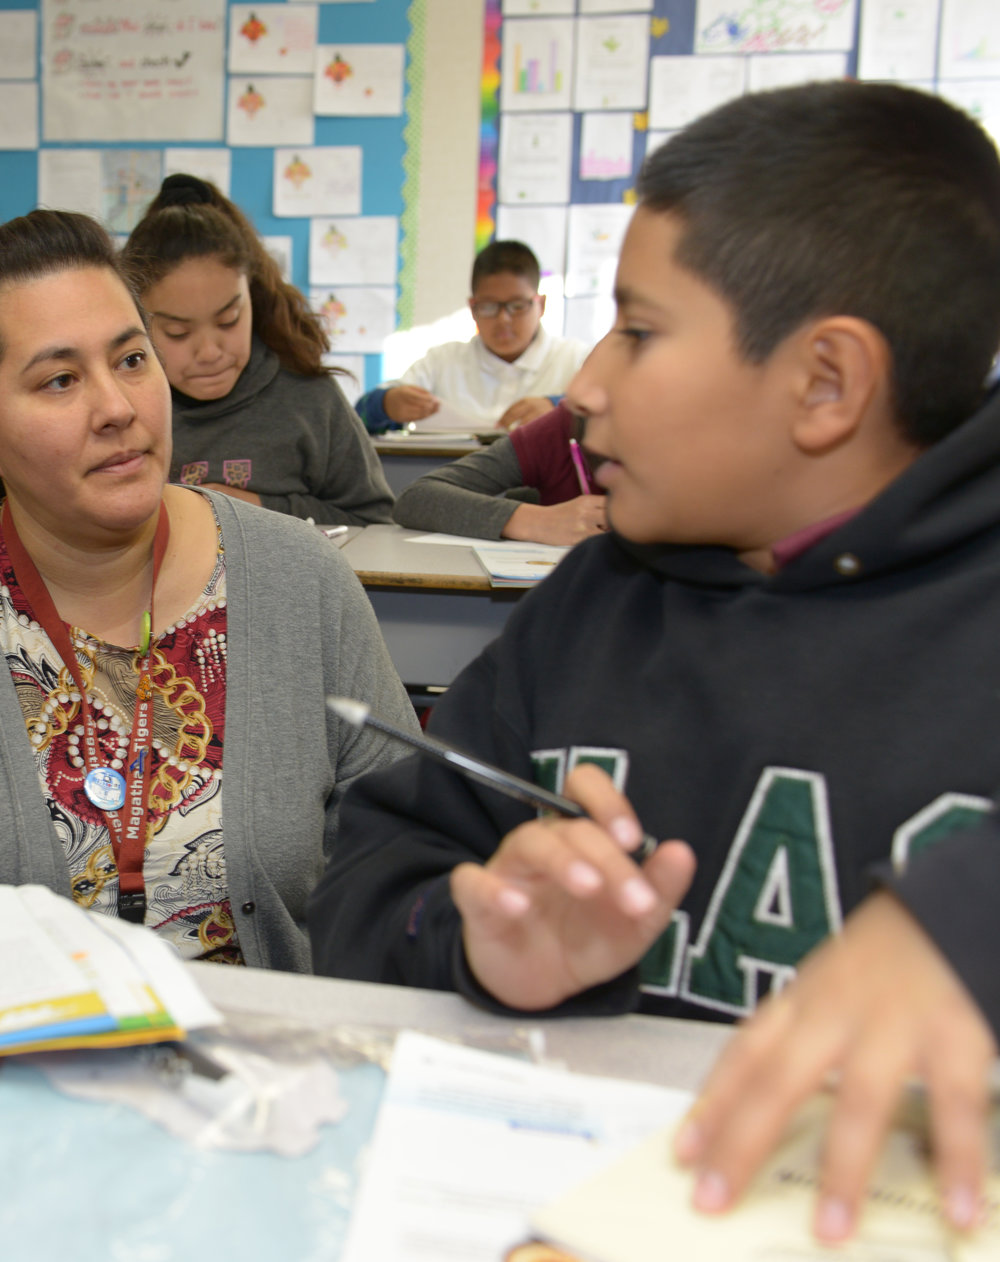 Proposition 58 Passed - Thanks to CTA members like you, voters passed Proposition 58, the Language Education, Acquisition and Readiness Now (LEARN) initiative that expands opportunities for California's students to become proficient in English.